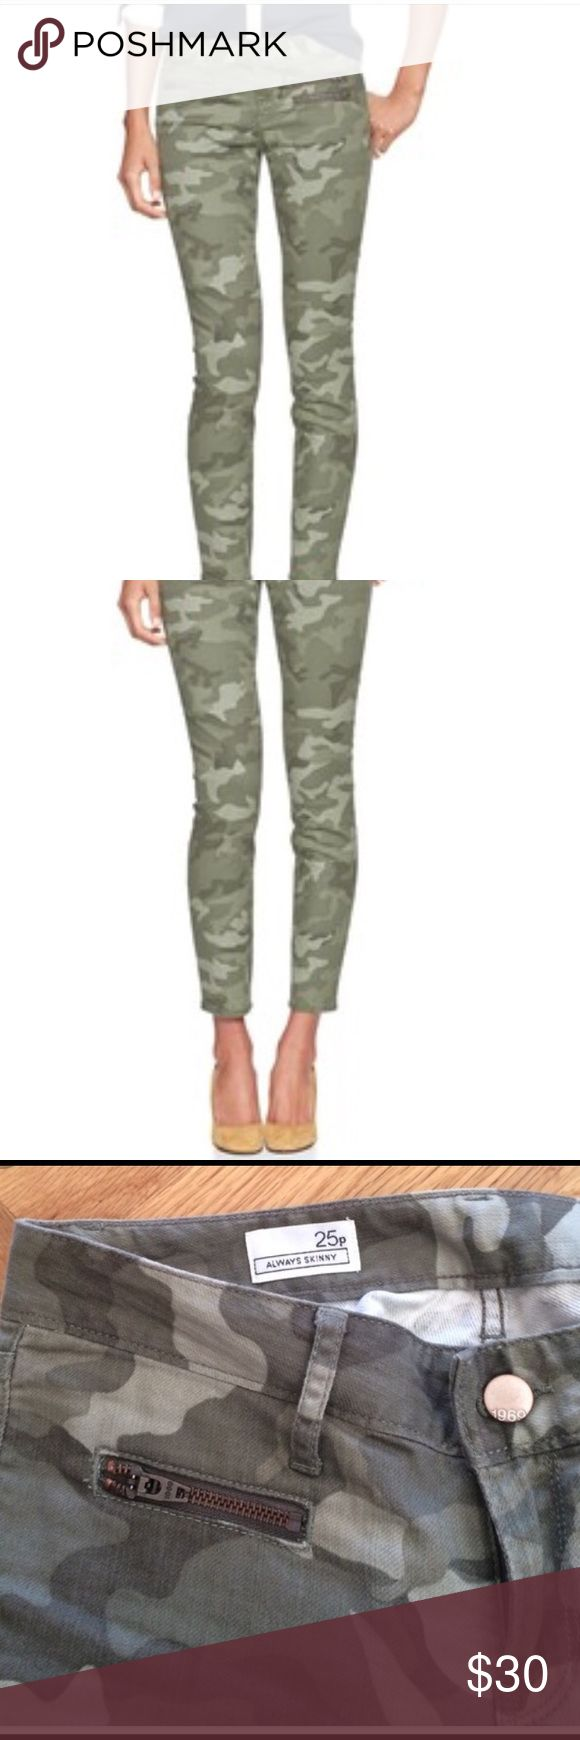 Gap camouflage skinny jeans with zippers Gap 1969 camo skinny jeans with zippers-Extremely stylish! GAP Jeans Skinny